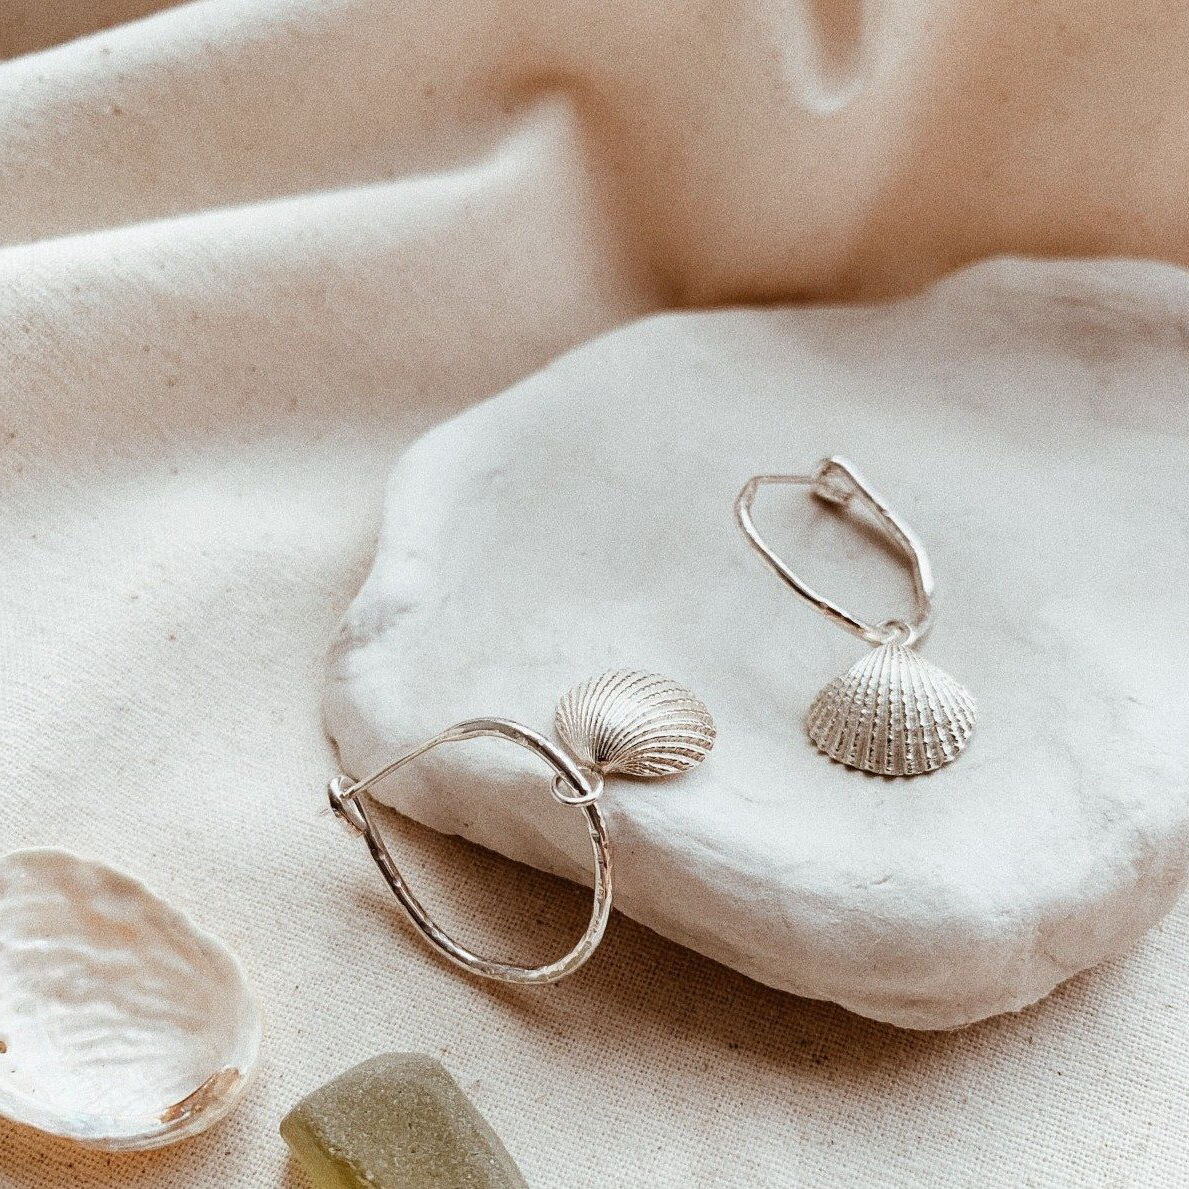 New Zealand made silver shell earrings by Found Treasure.